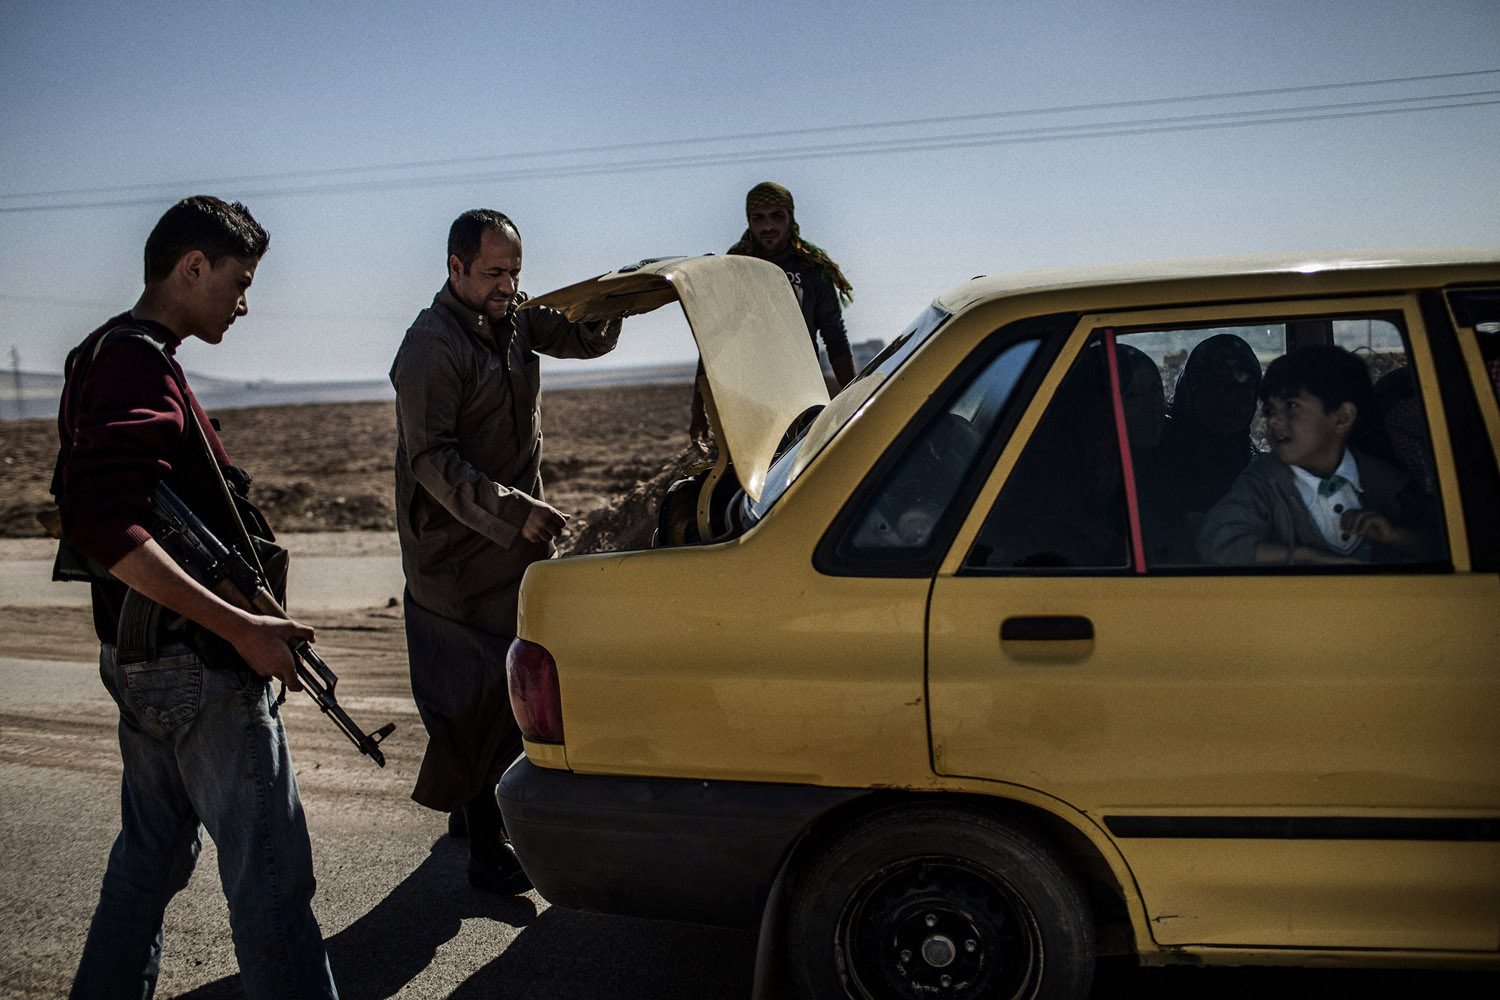 YPG fighters inspect a car at the checkpoint along the road between al-Qamishli and al-Malikiyah (Derik)